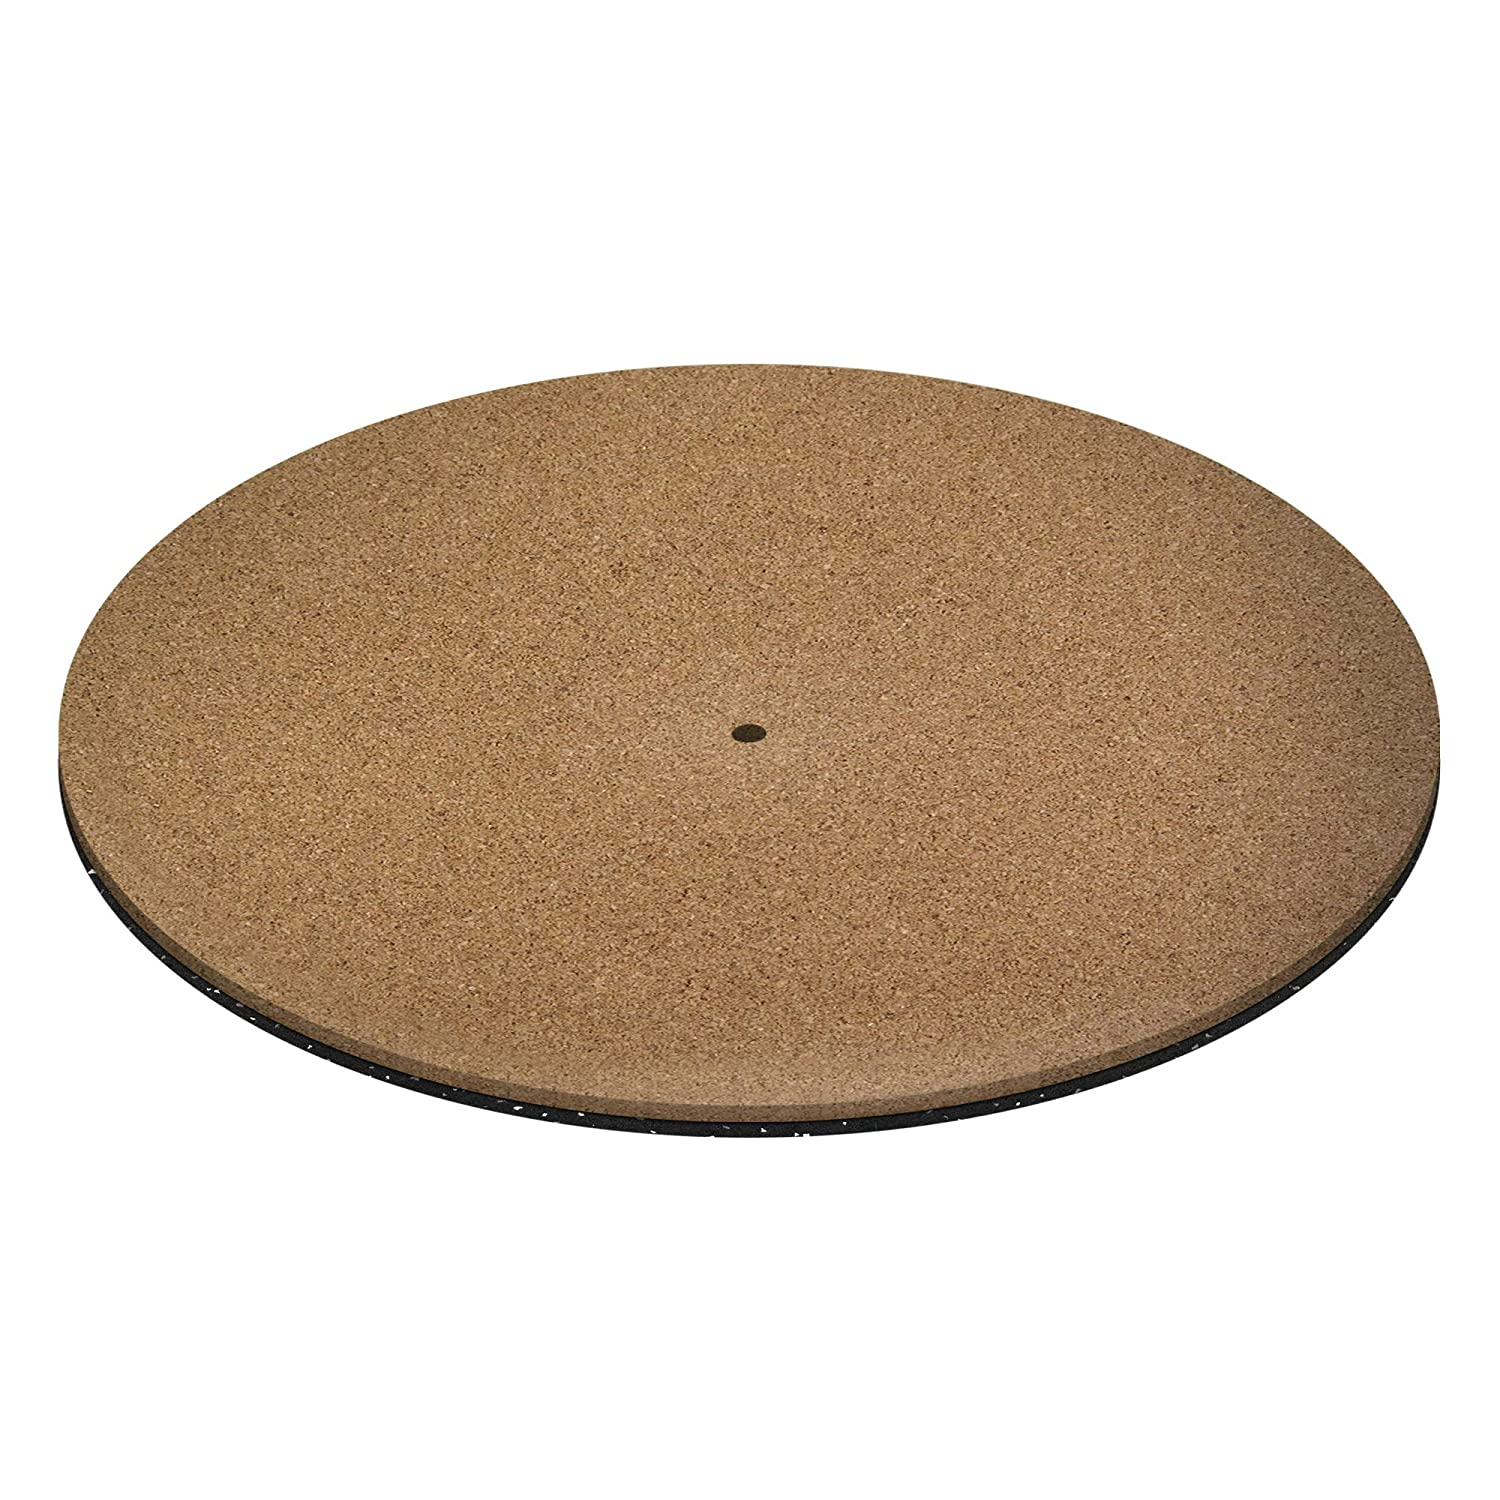 Vinyl Record Cork Slipmat By KAIU – Cork & Urethane Two Layer Turntable Mat For Vinyl Records Provides Better Grip – Premium 12inch Cork Base Improves Sound Quality & Performance - MADE IN THE USA